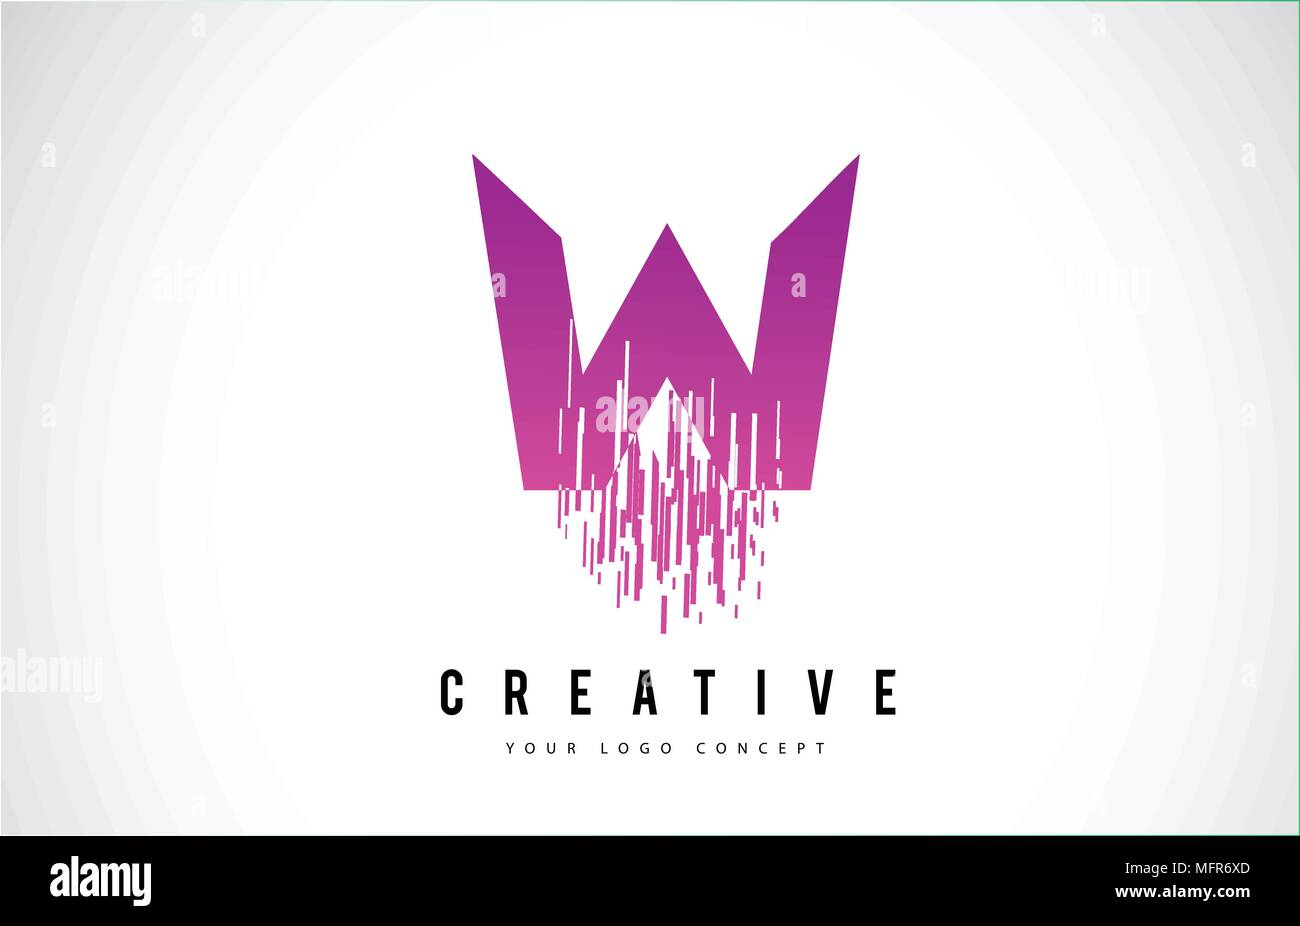 W Letter Logo Stock Photos & W Letter Logo Stock Images - Alamy